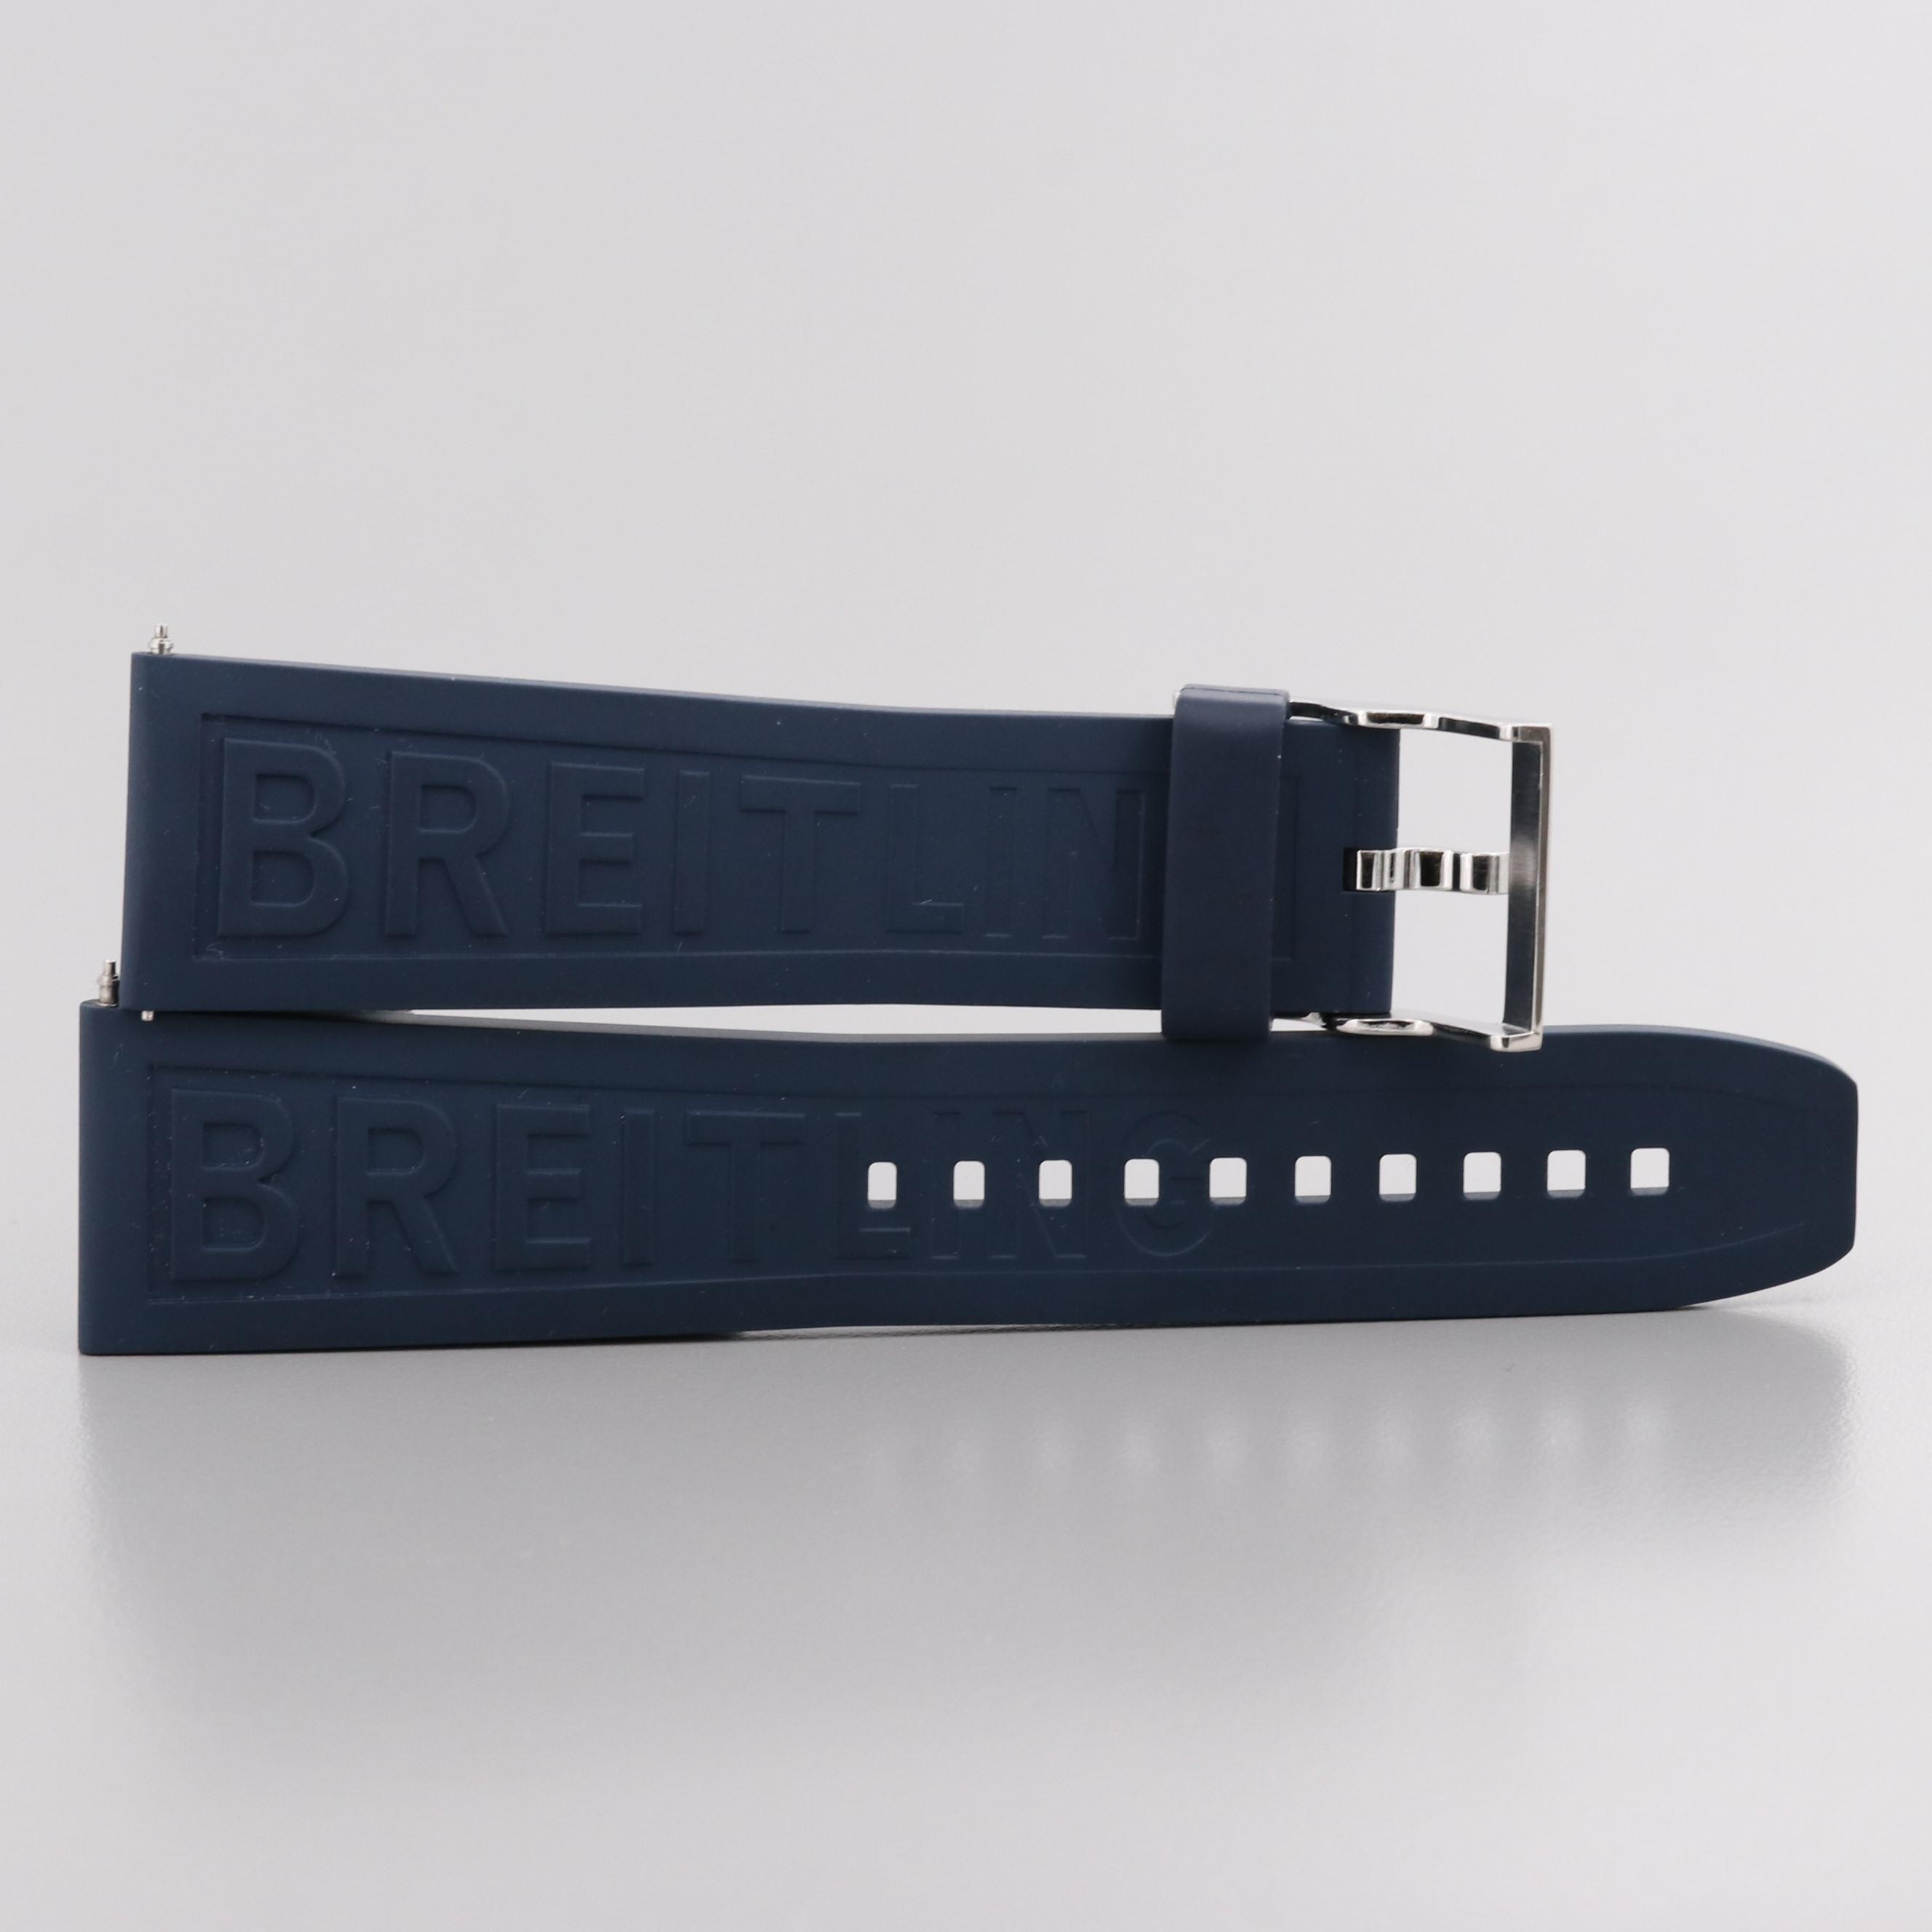 Breitling Diver Pro III Navy Blue Rubber Watch Strap